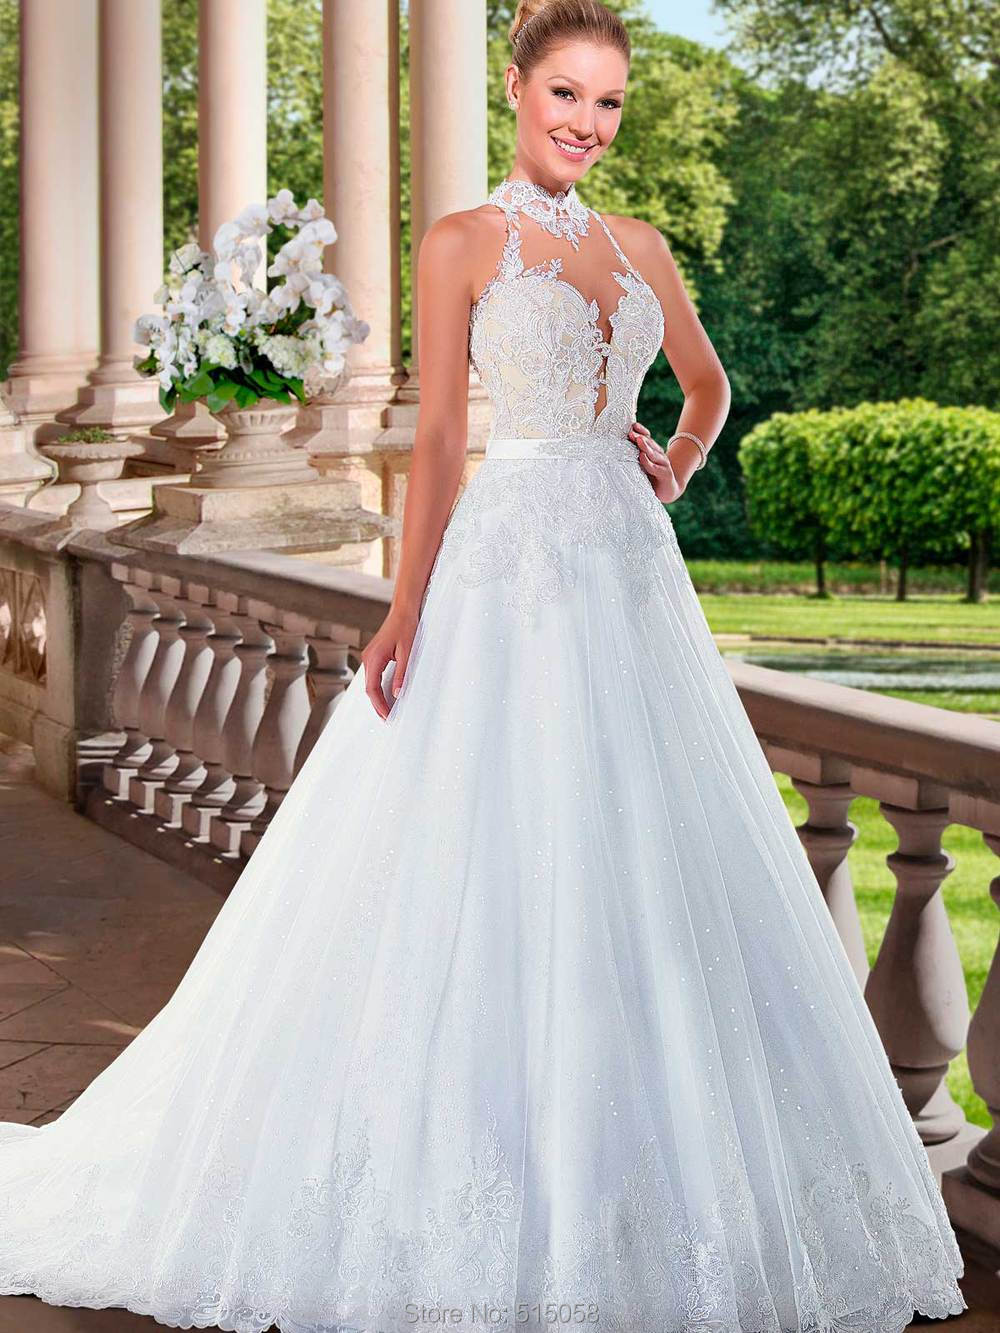 Halter Top A Line Wedding Dress Www Pixshark Com